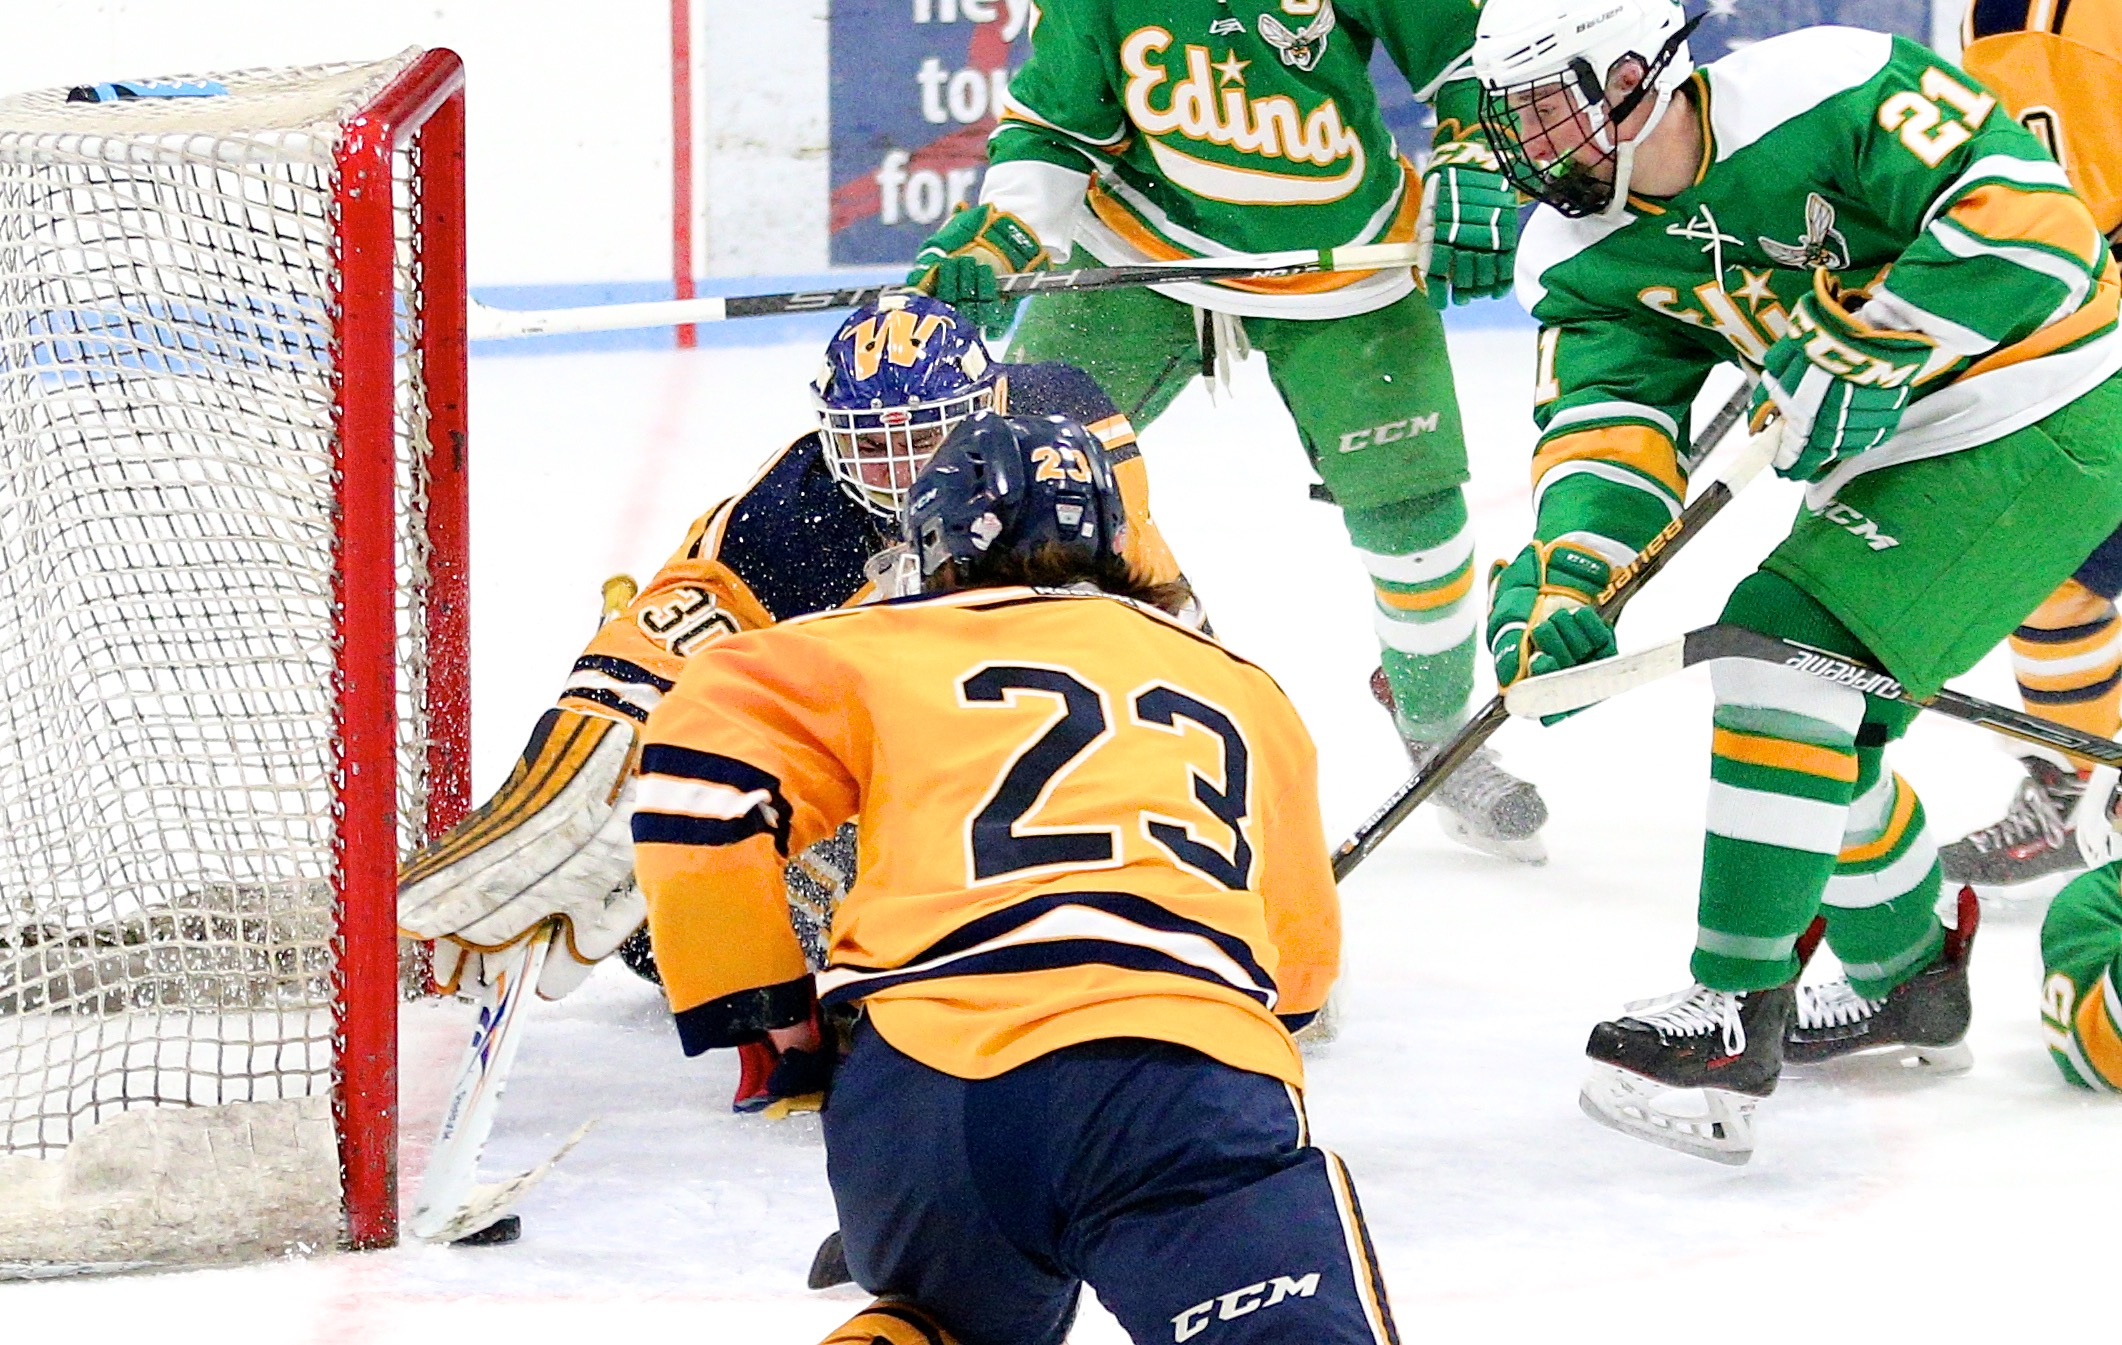 MN H.S.: Wayzata Reaches Section Final After Rallying To Defeat Edina Once Again